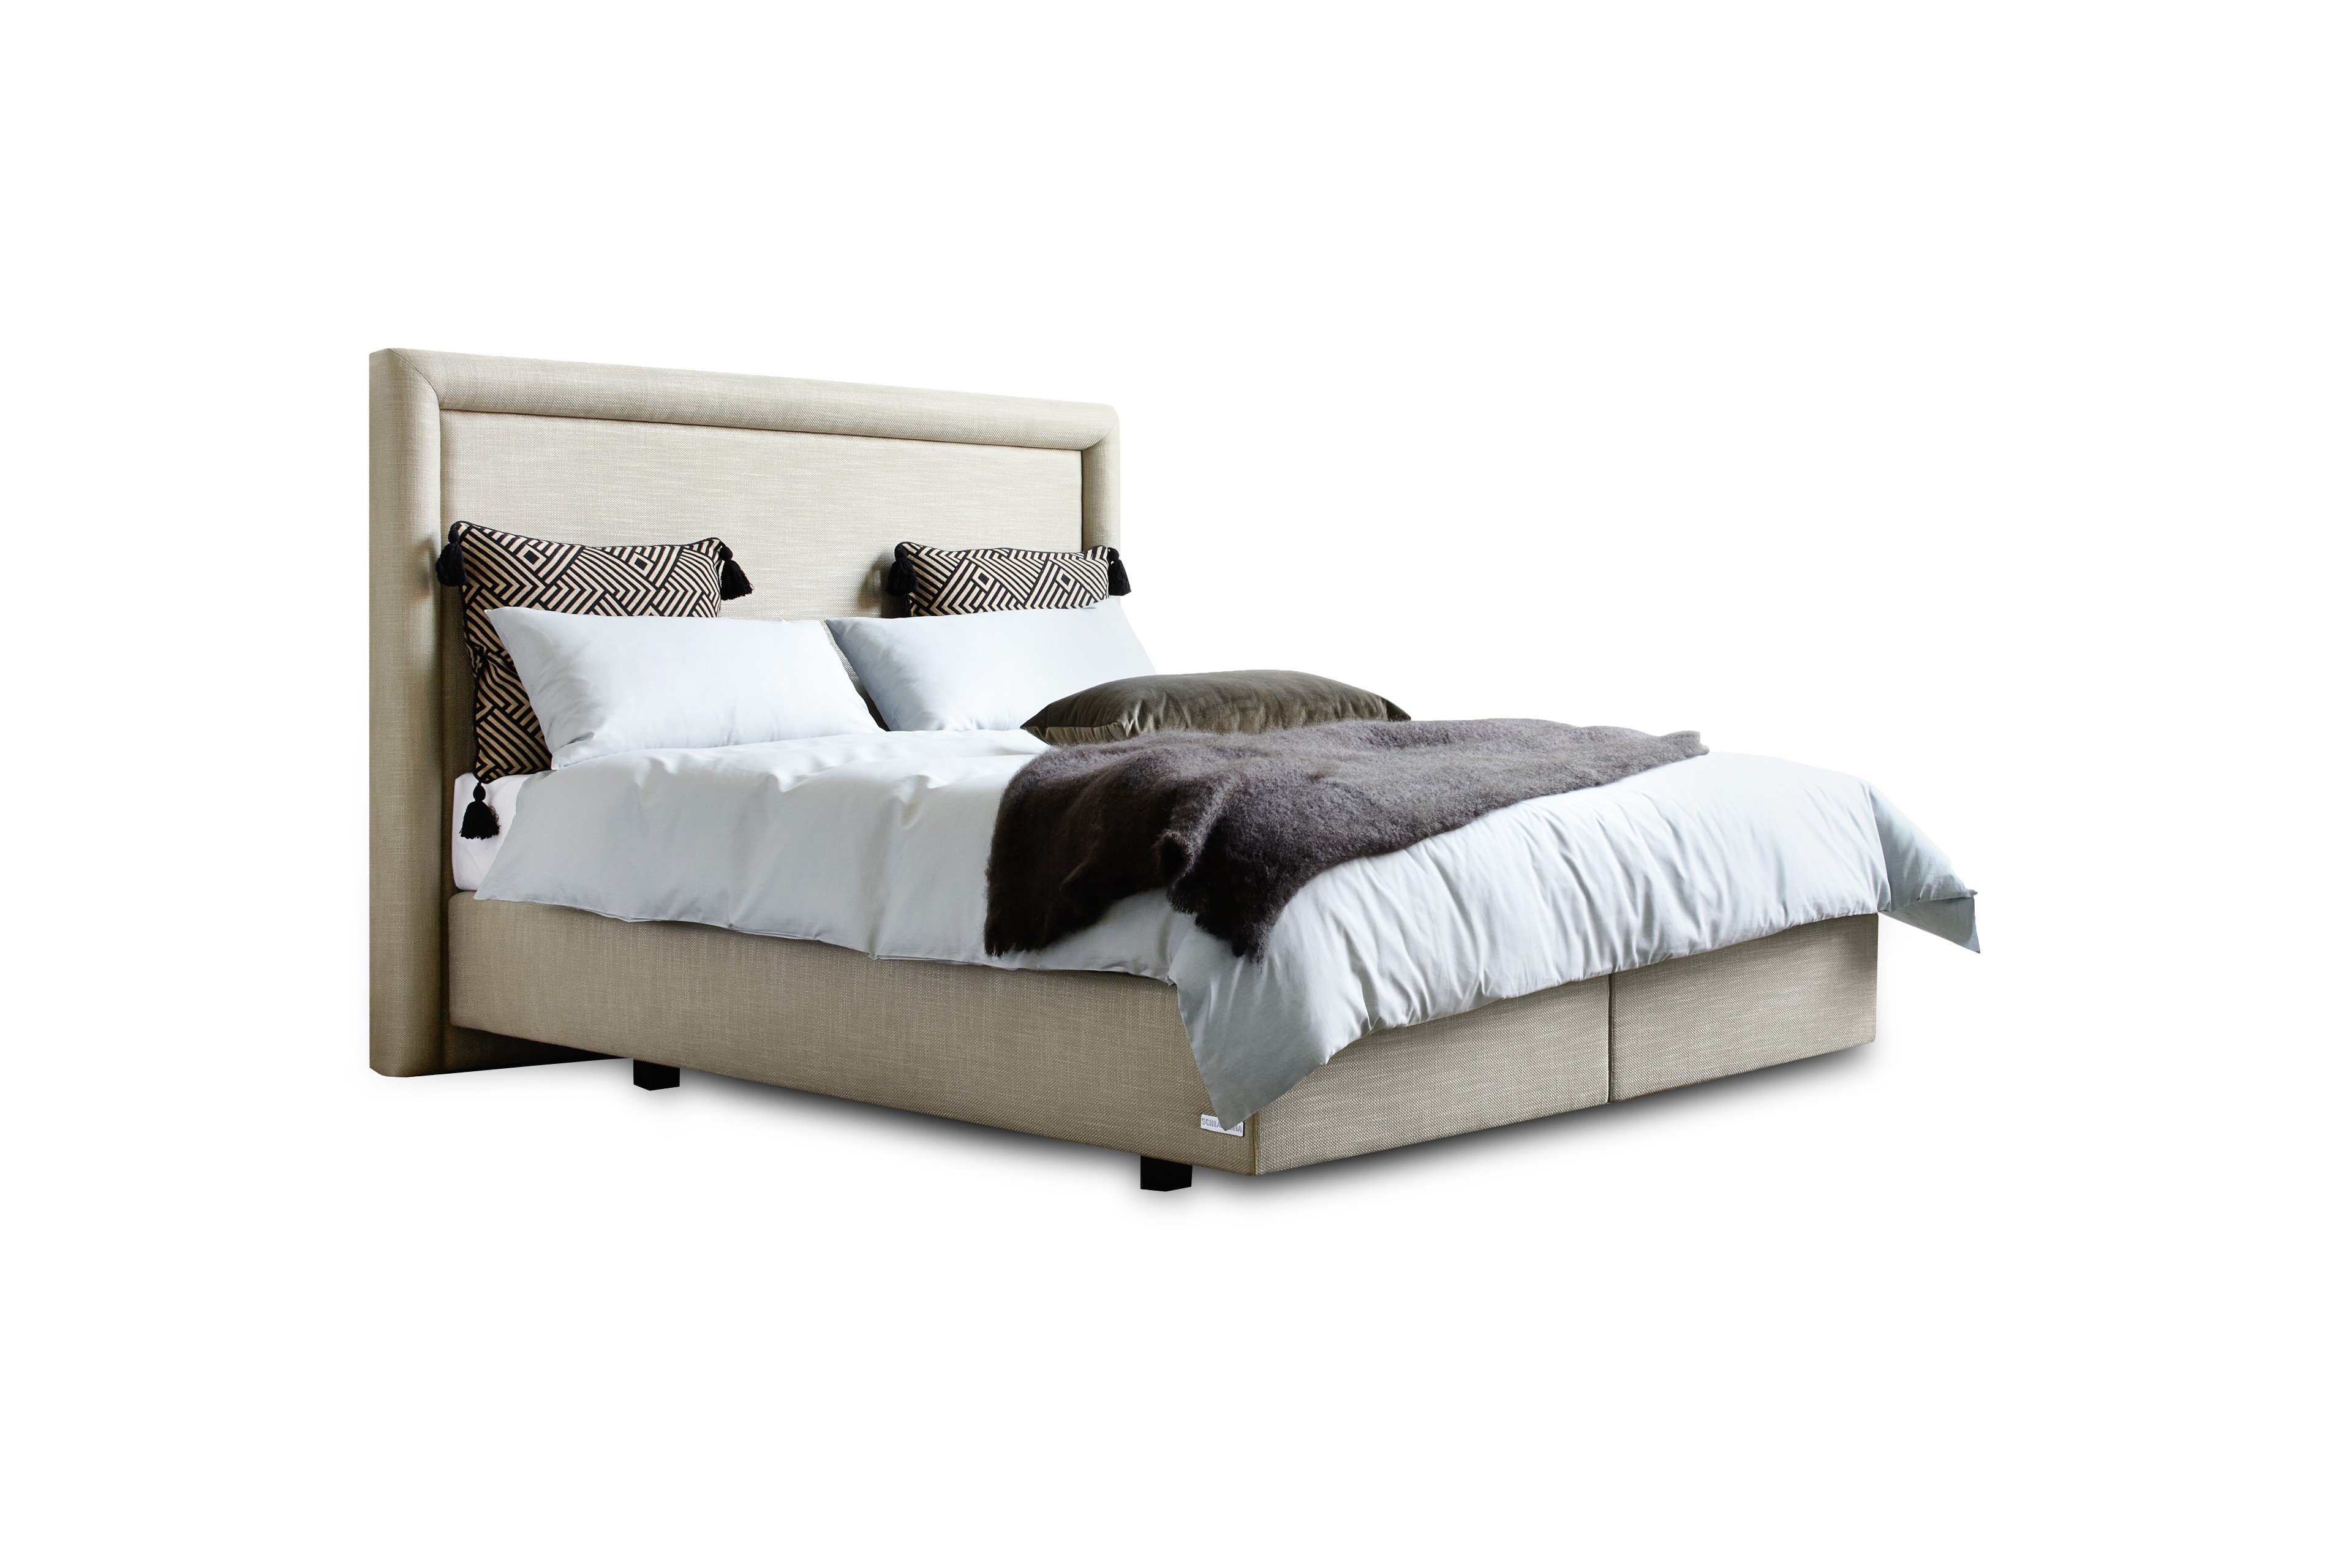 boxspringbett ottello von schlaraffia in sand m bel letz ihr online shop. Black Bedroom Furniture Sets. Home Design Ideas